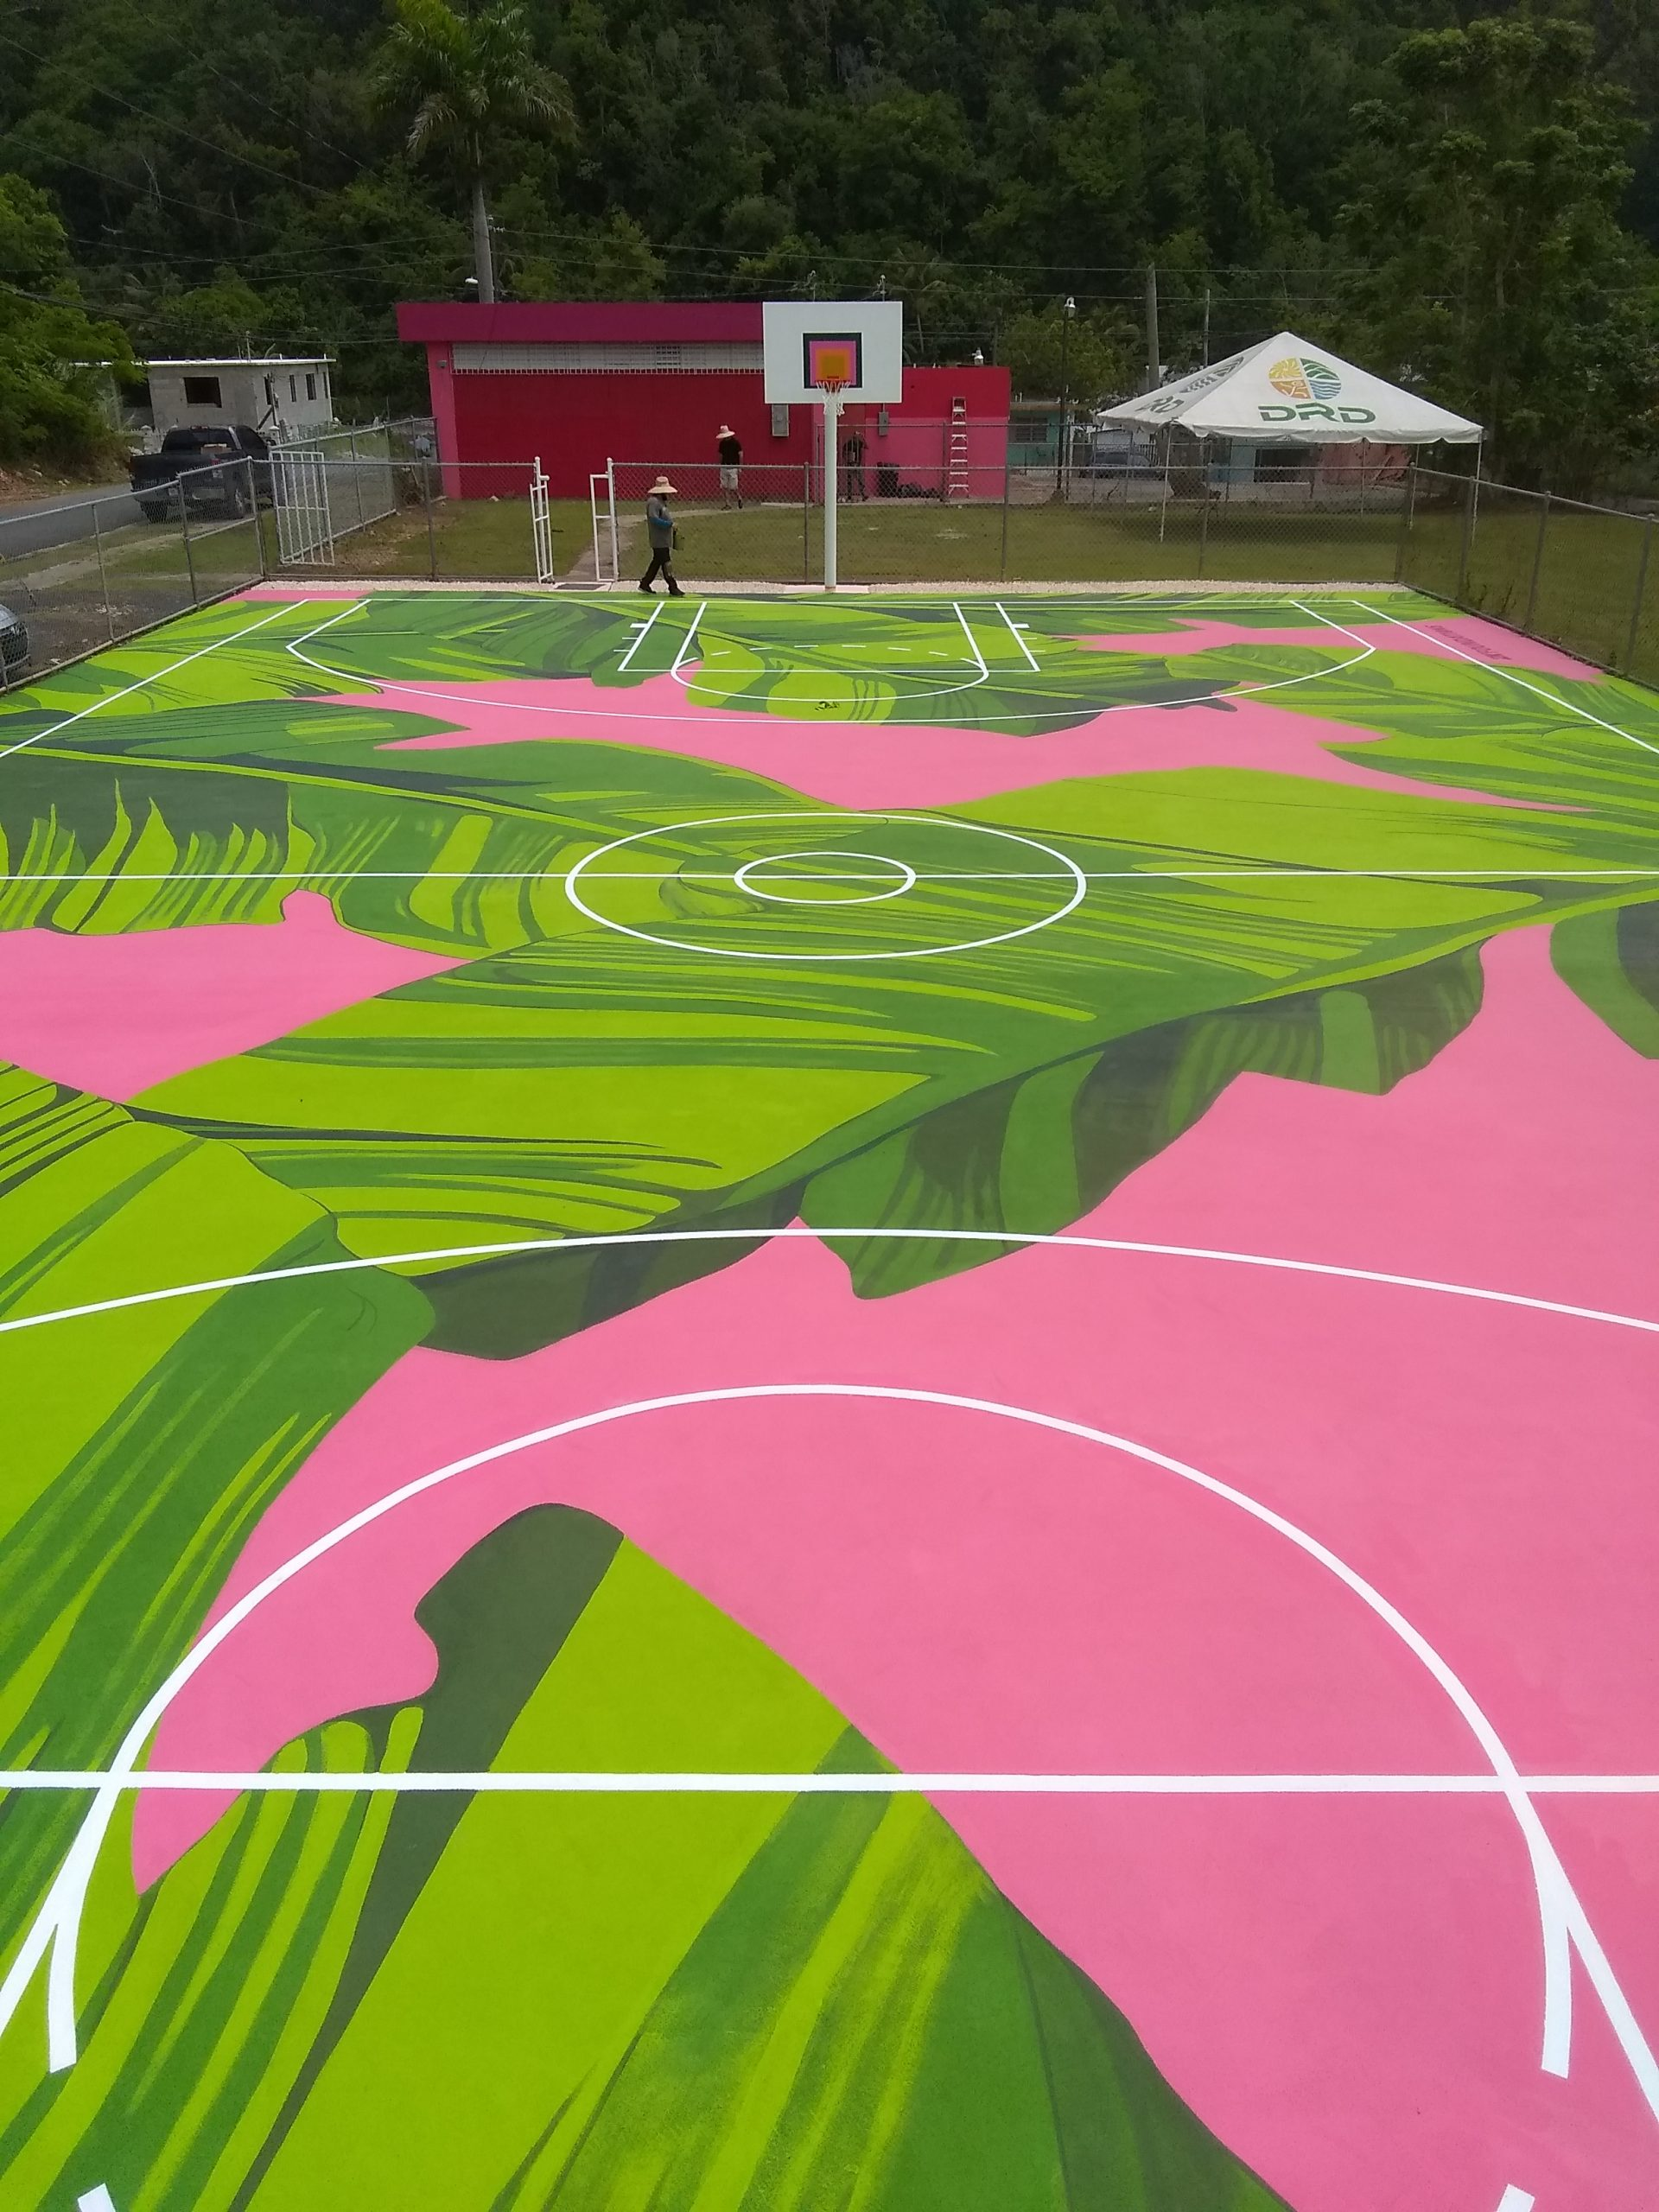 Toa Baja Basketball Court